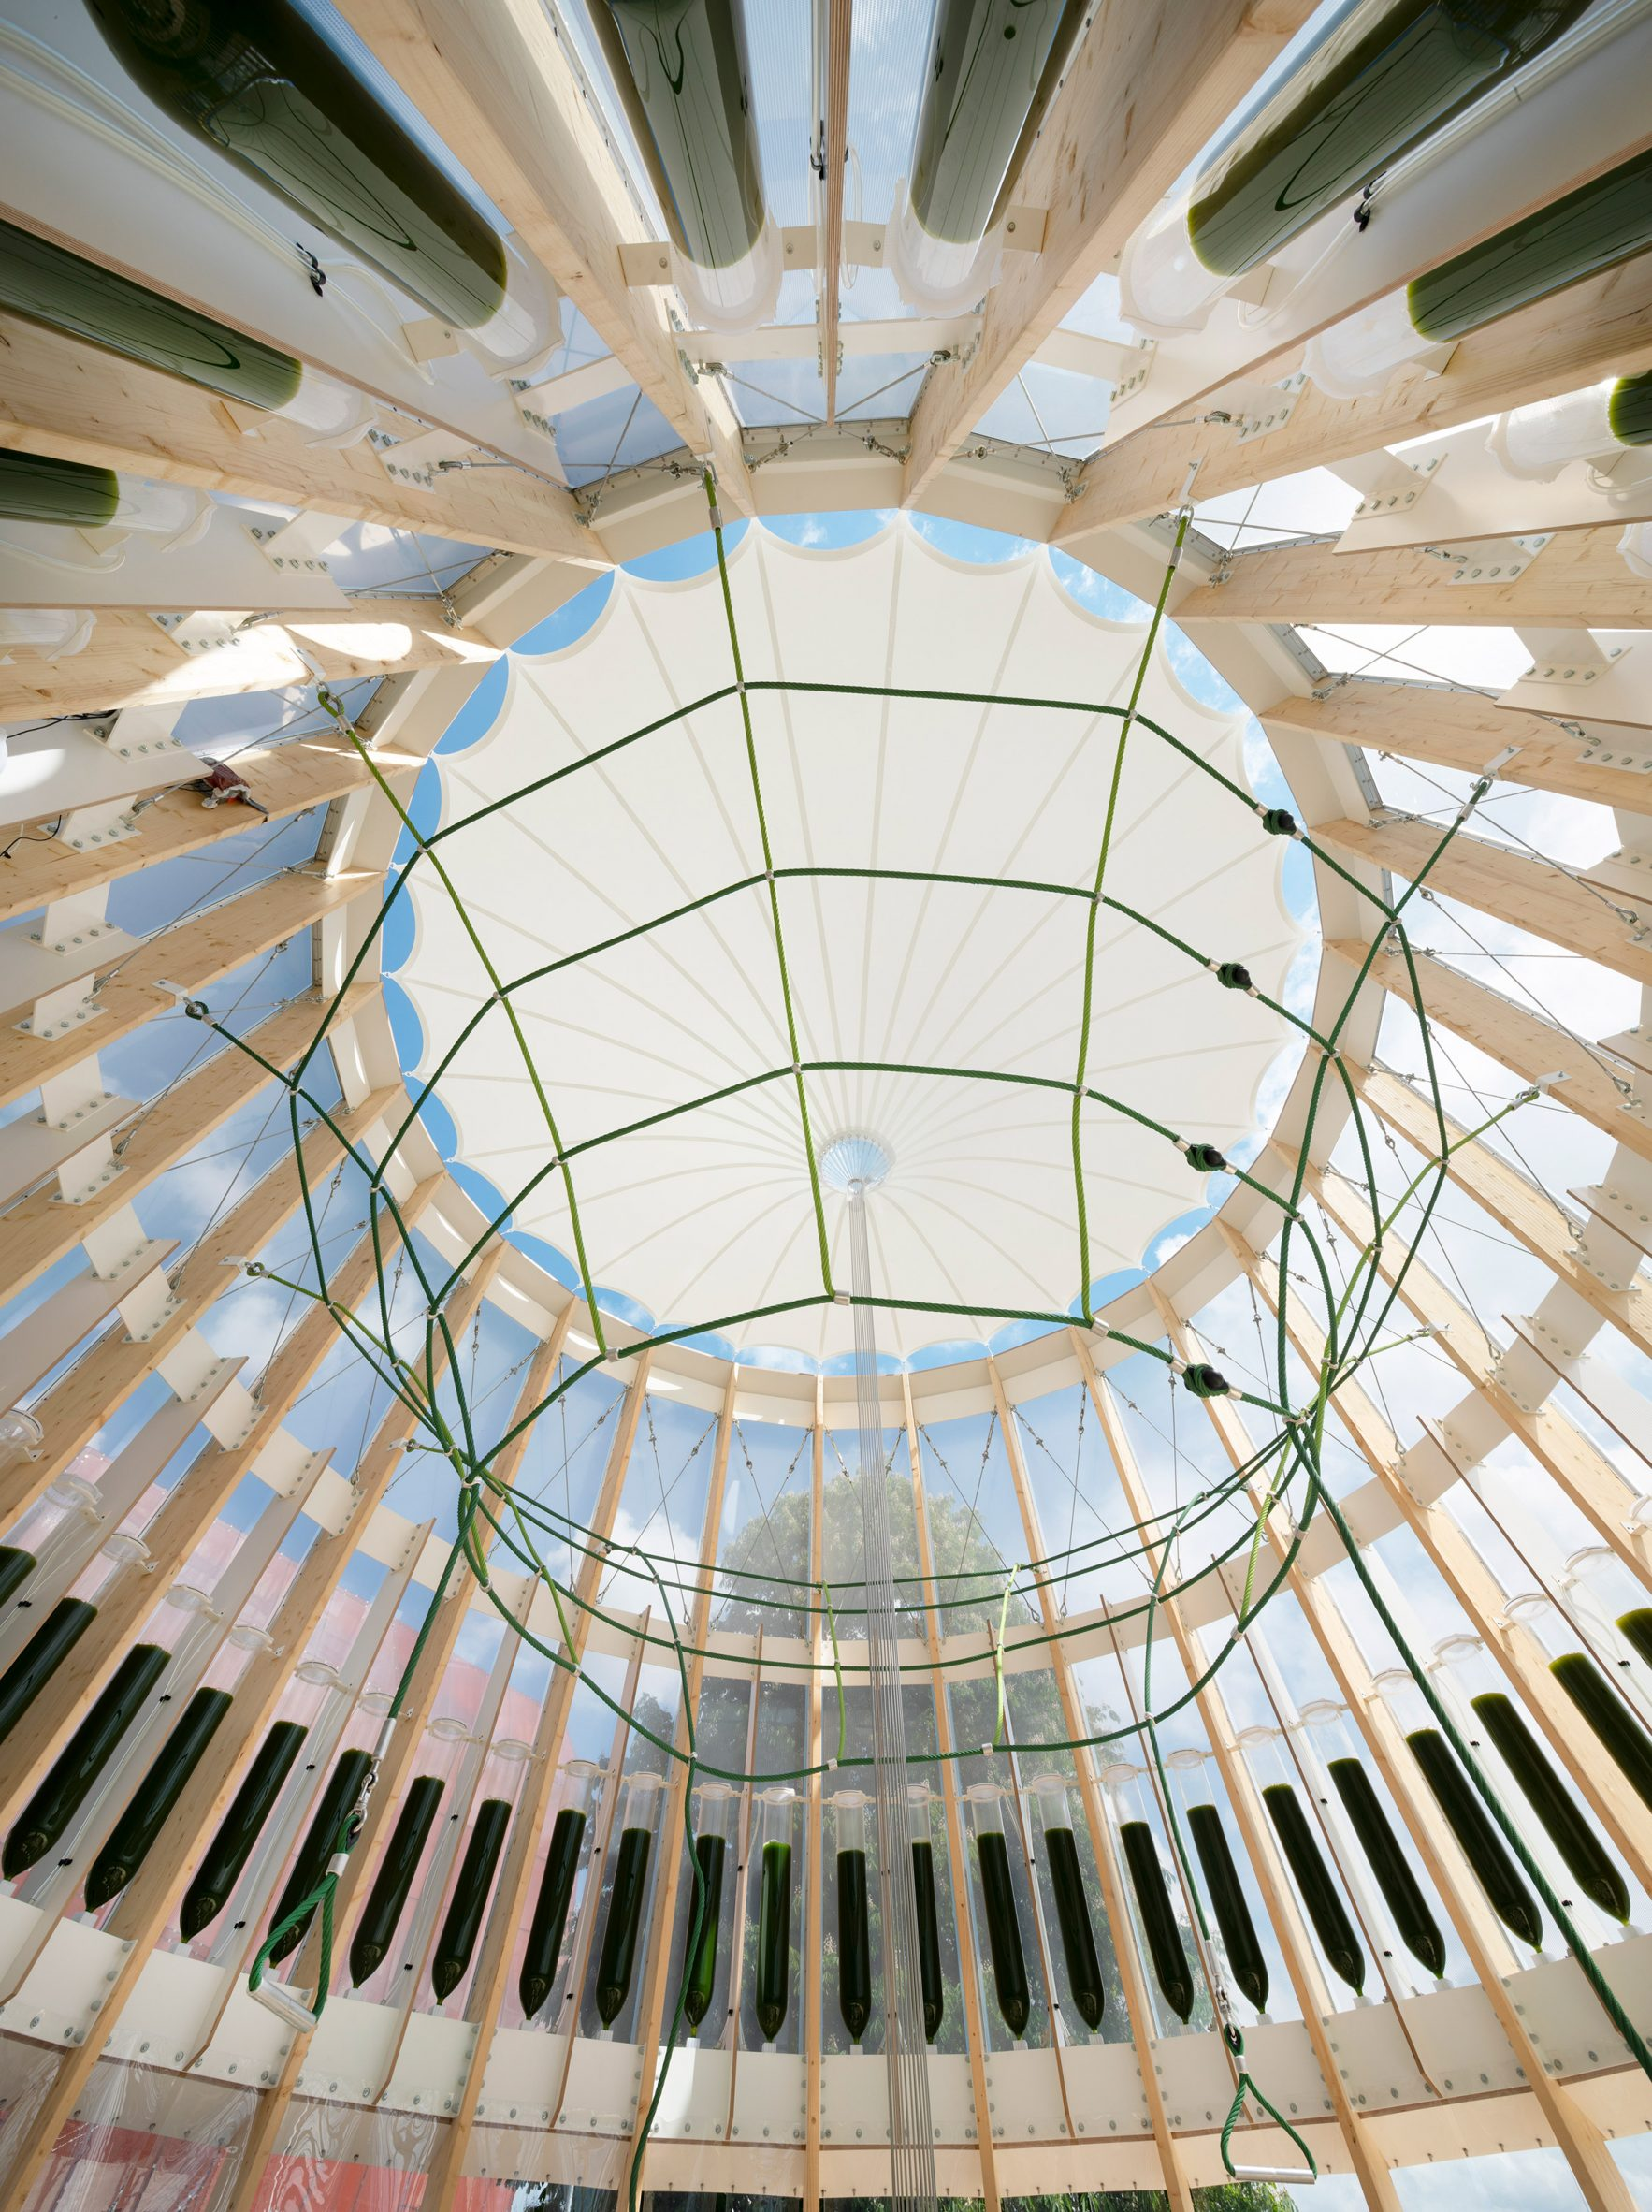 Conical roof membrane inside the playground